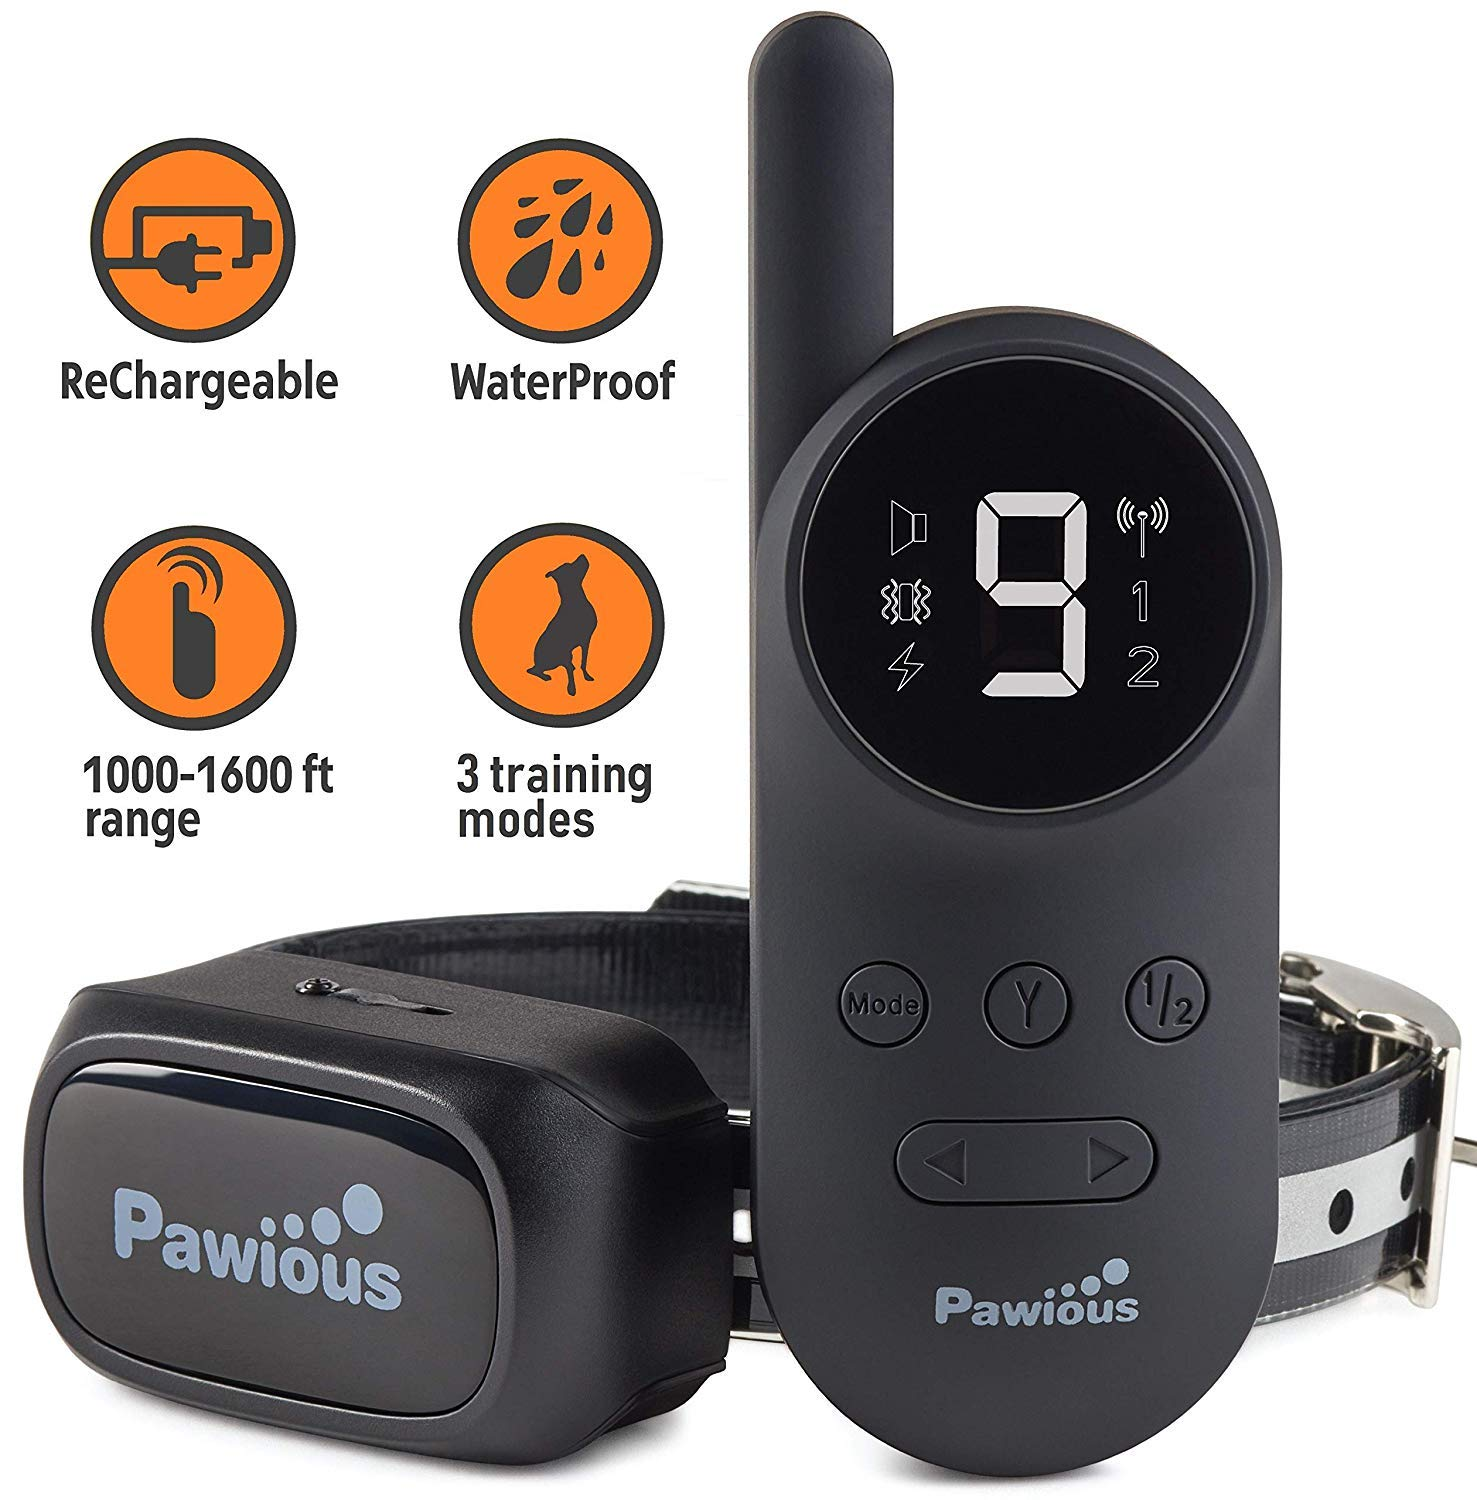 Pawious Dog Training Collar with Remote [Newest] - Rechargeable Dog Shock Collar for Small Medium and Large Dogs | Long Range up to 1600ft, Waterproof, E-Collar by Pawious